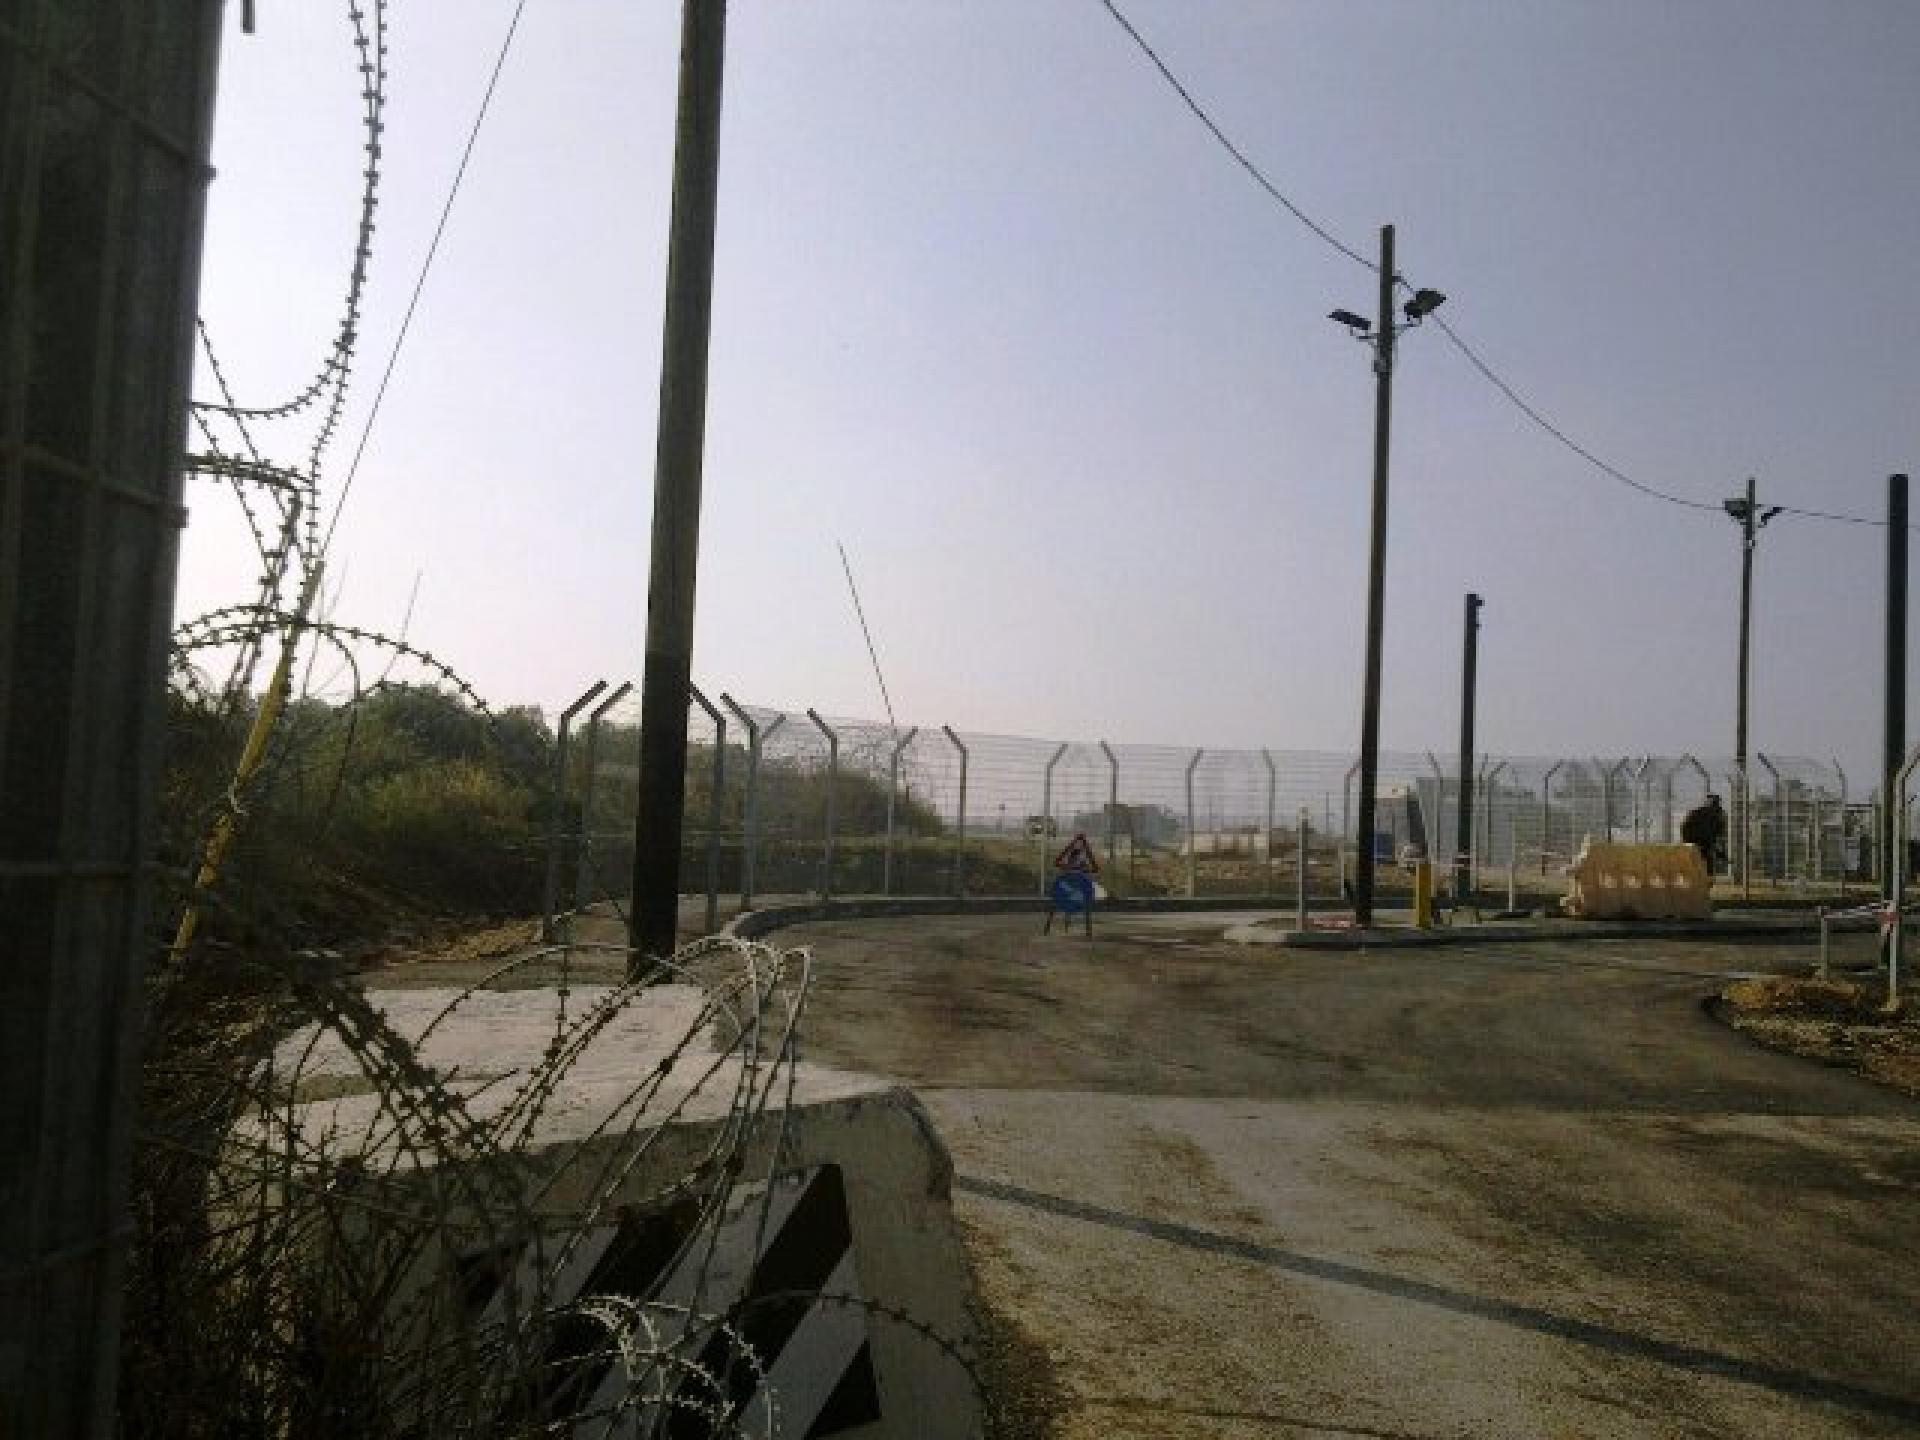 Tura/Shaked checkpoint 10.05.12